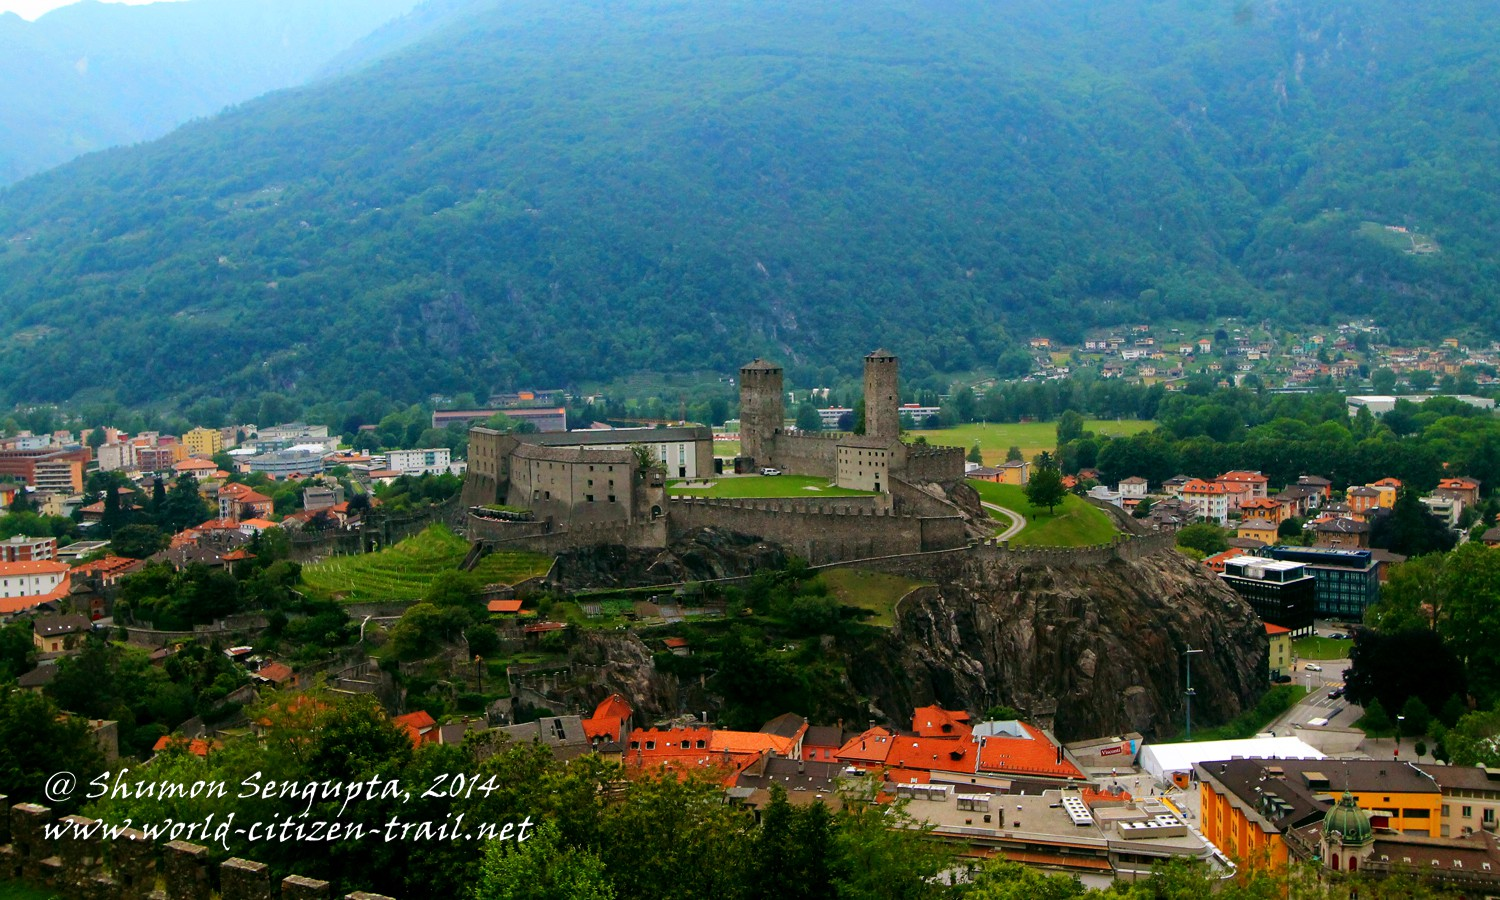 The Castles of Bellinzona, Ticino, Switzerland